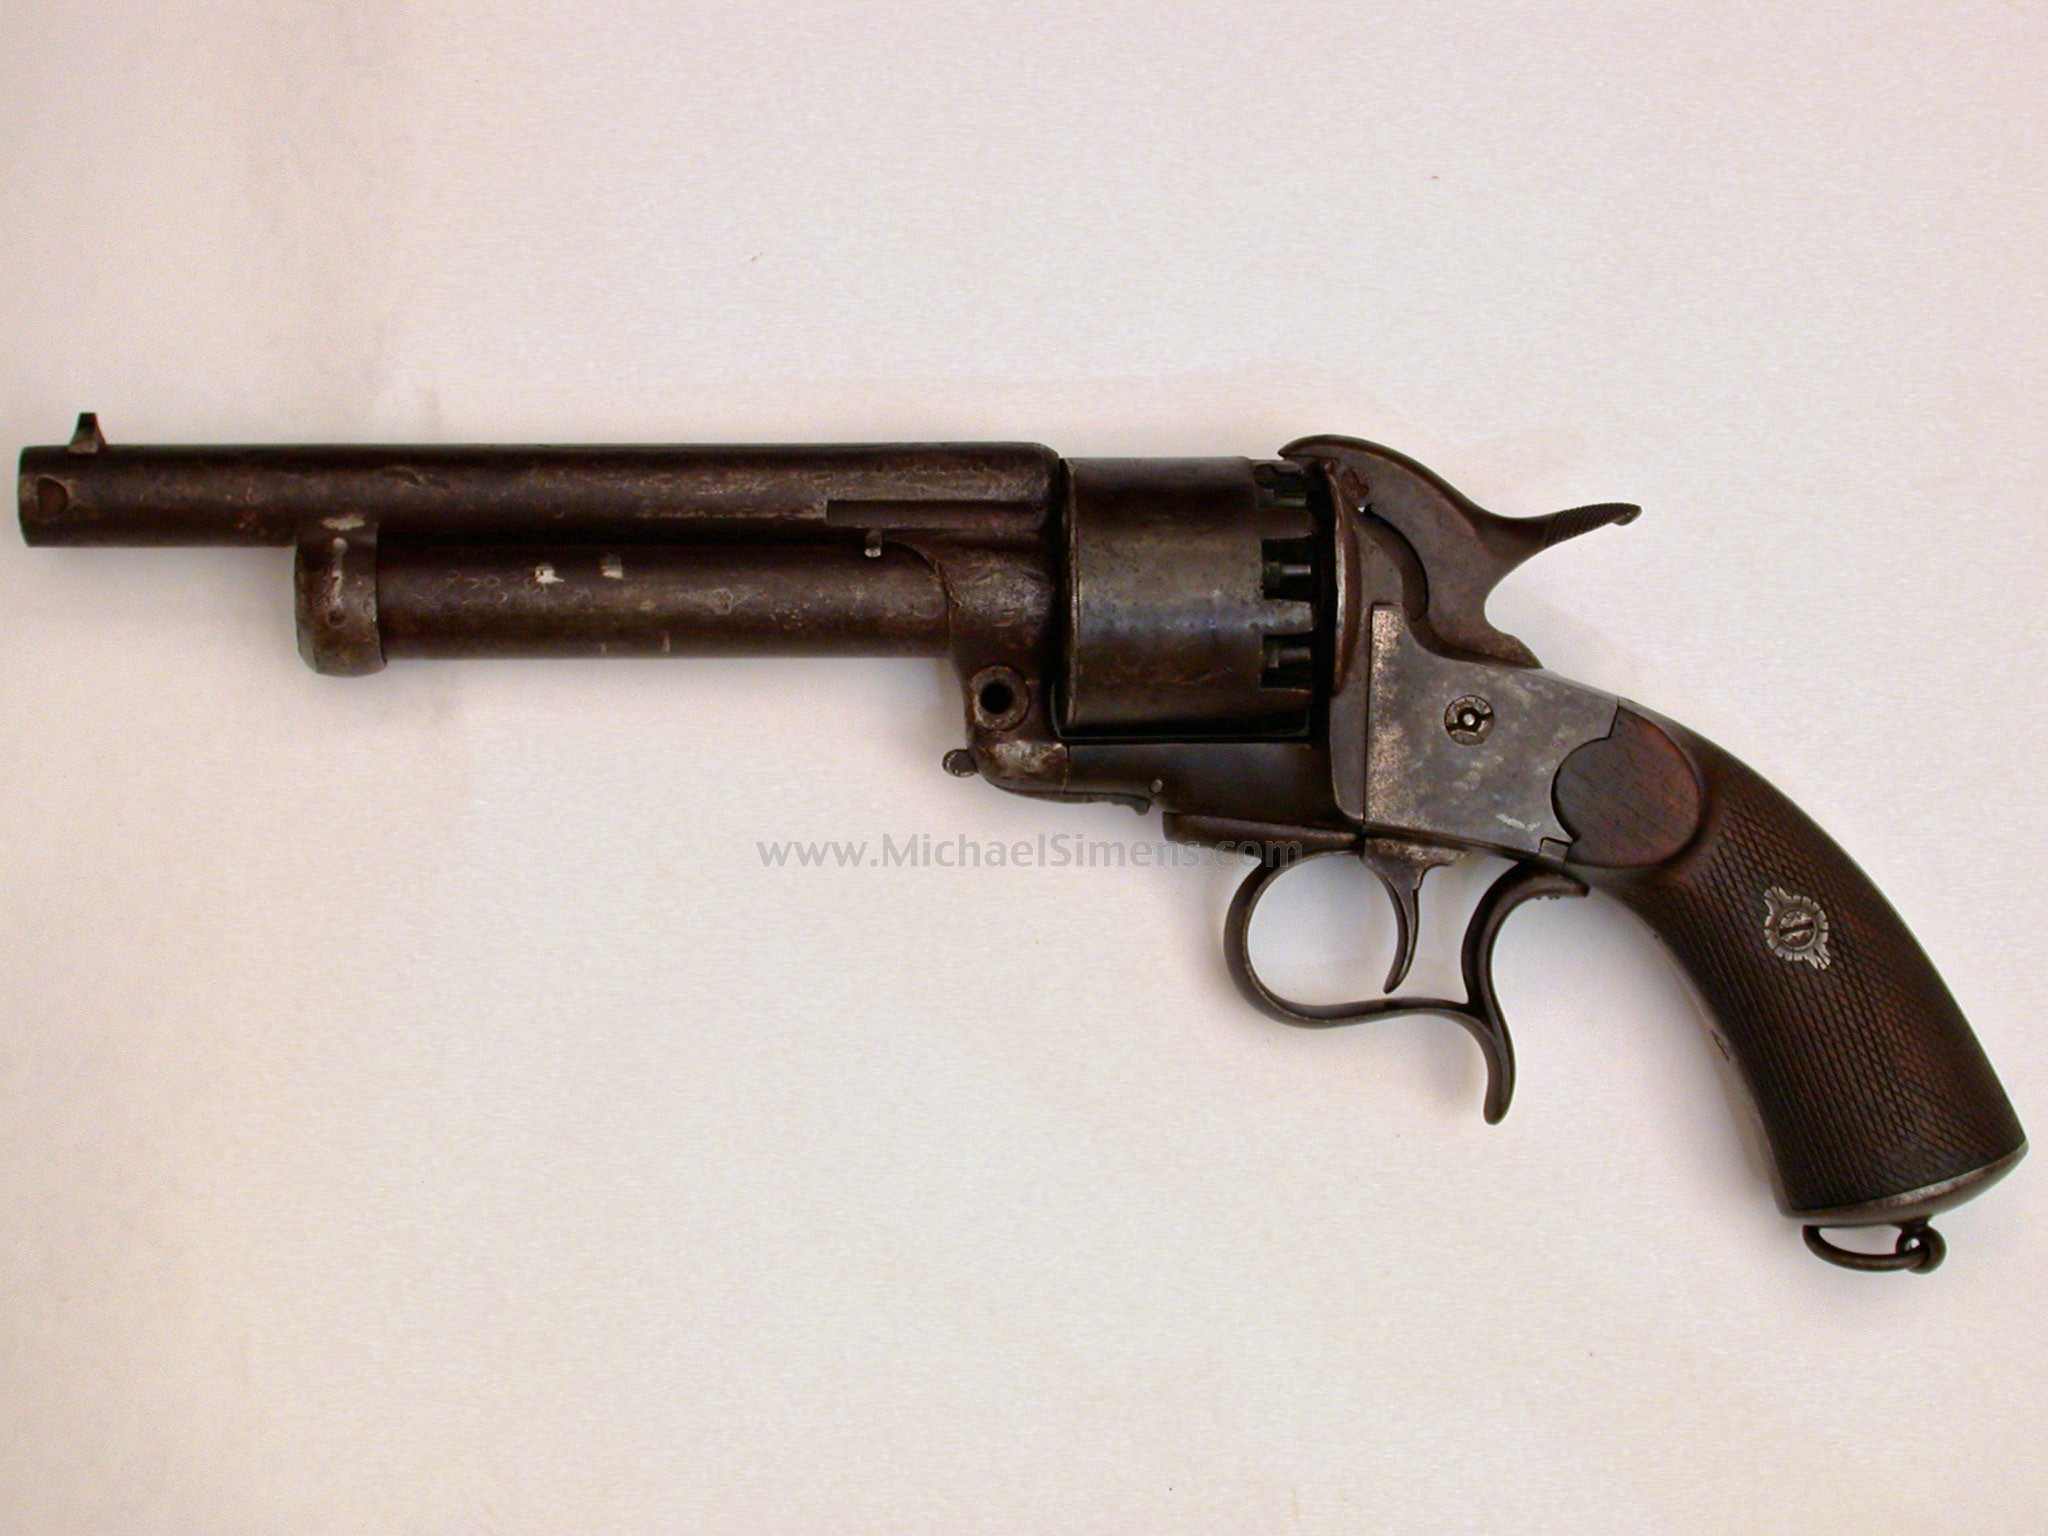 Lemat Revolvers For Sale http://www.michaelsimens.com/antique-guns-revolvers-pistols-derringers-for-sale/one-of-the-finest-lemat-revolvers-in-the-world.html